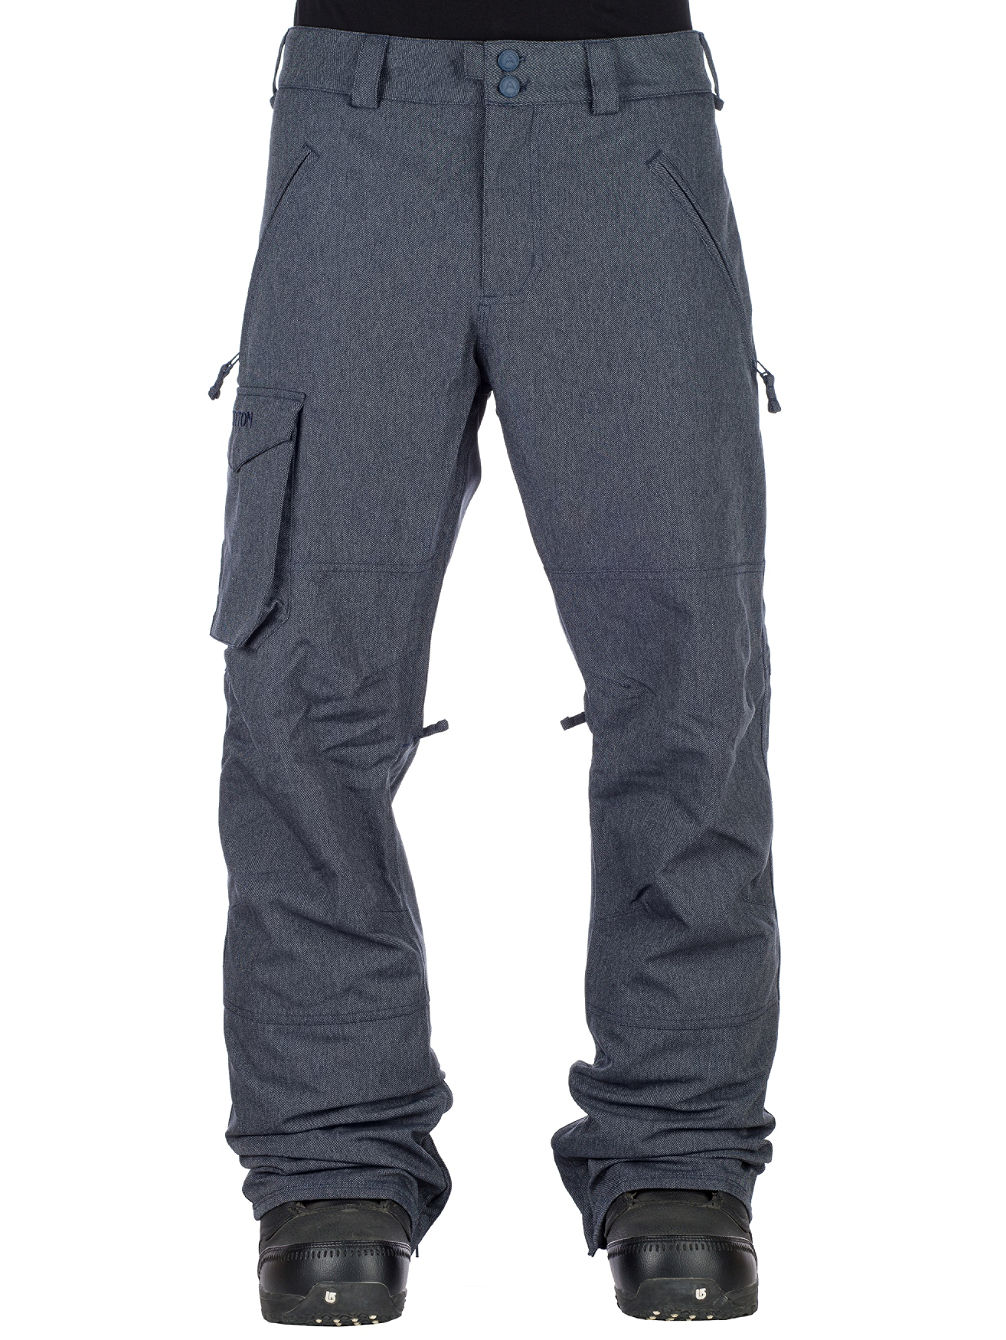 Covert Insulated Pants